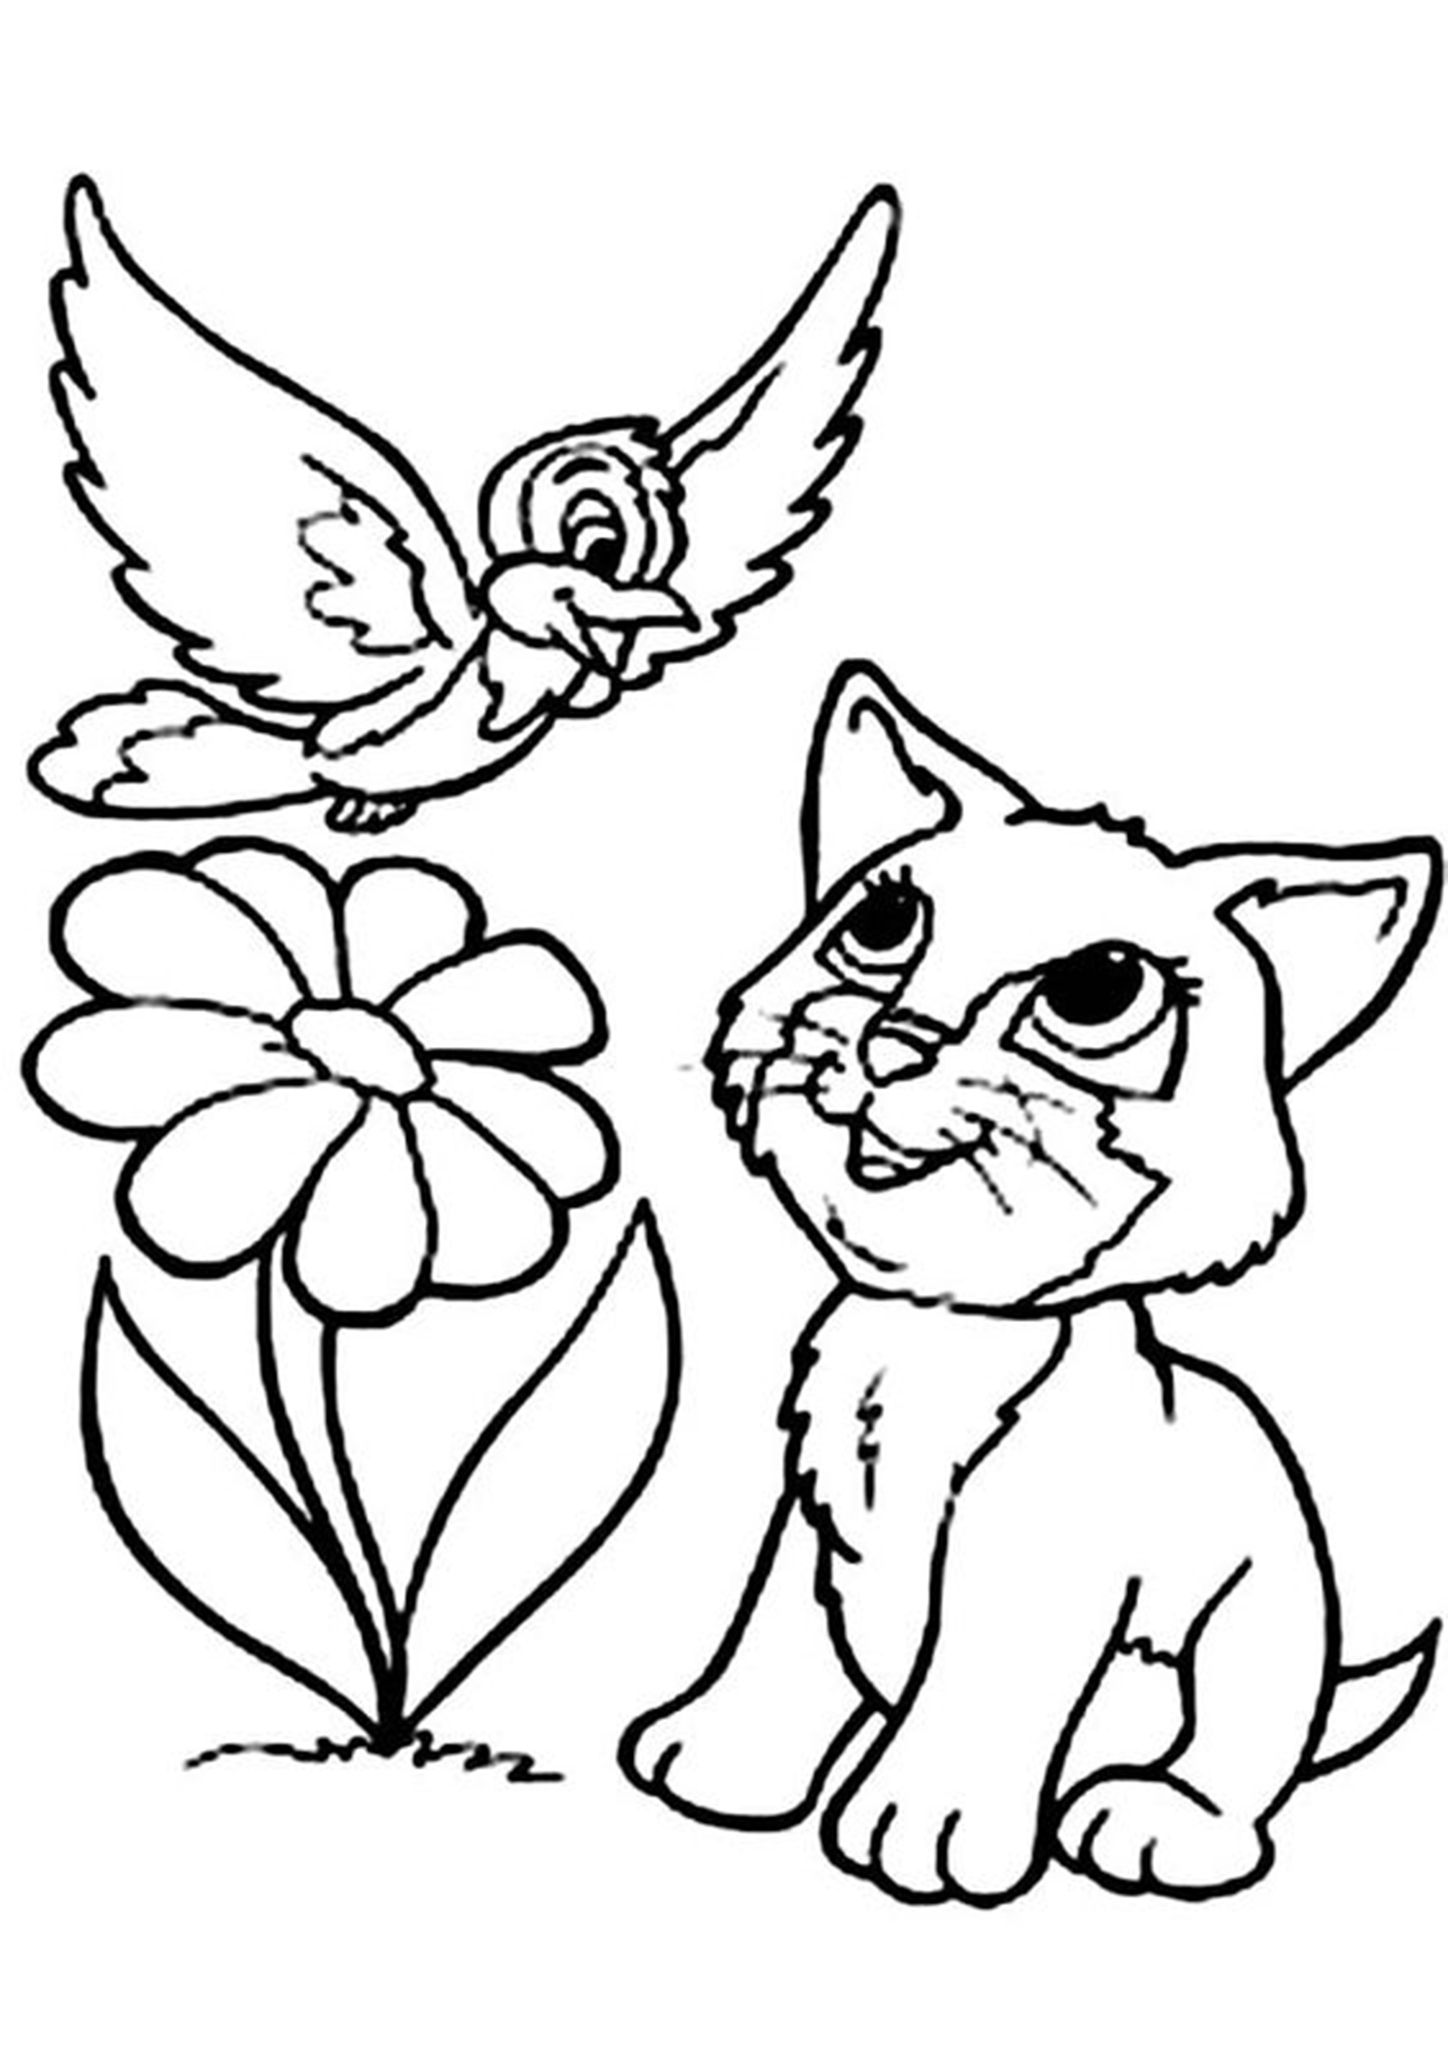 Free Easy To Print Kitten Coloring Pages In 2020 Puppy Coloring Pages Bird Coloring Pages Kittens Coloring